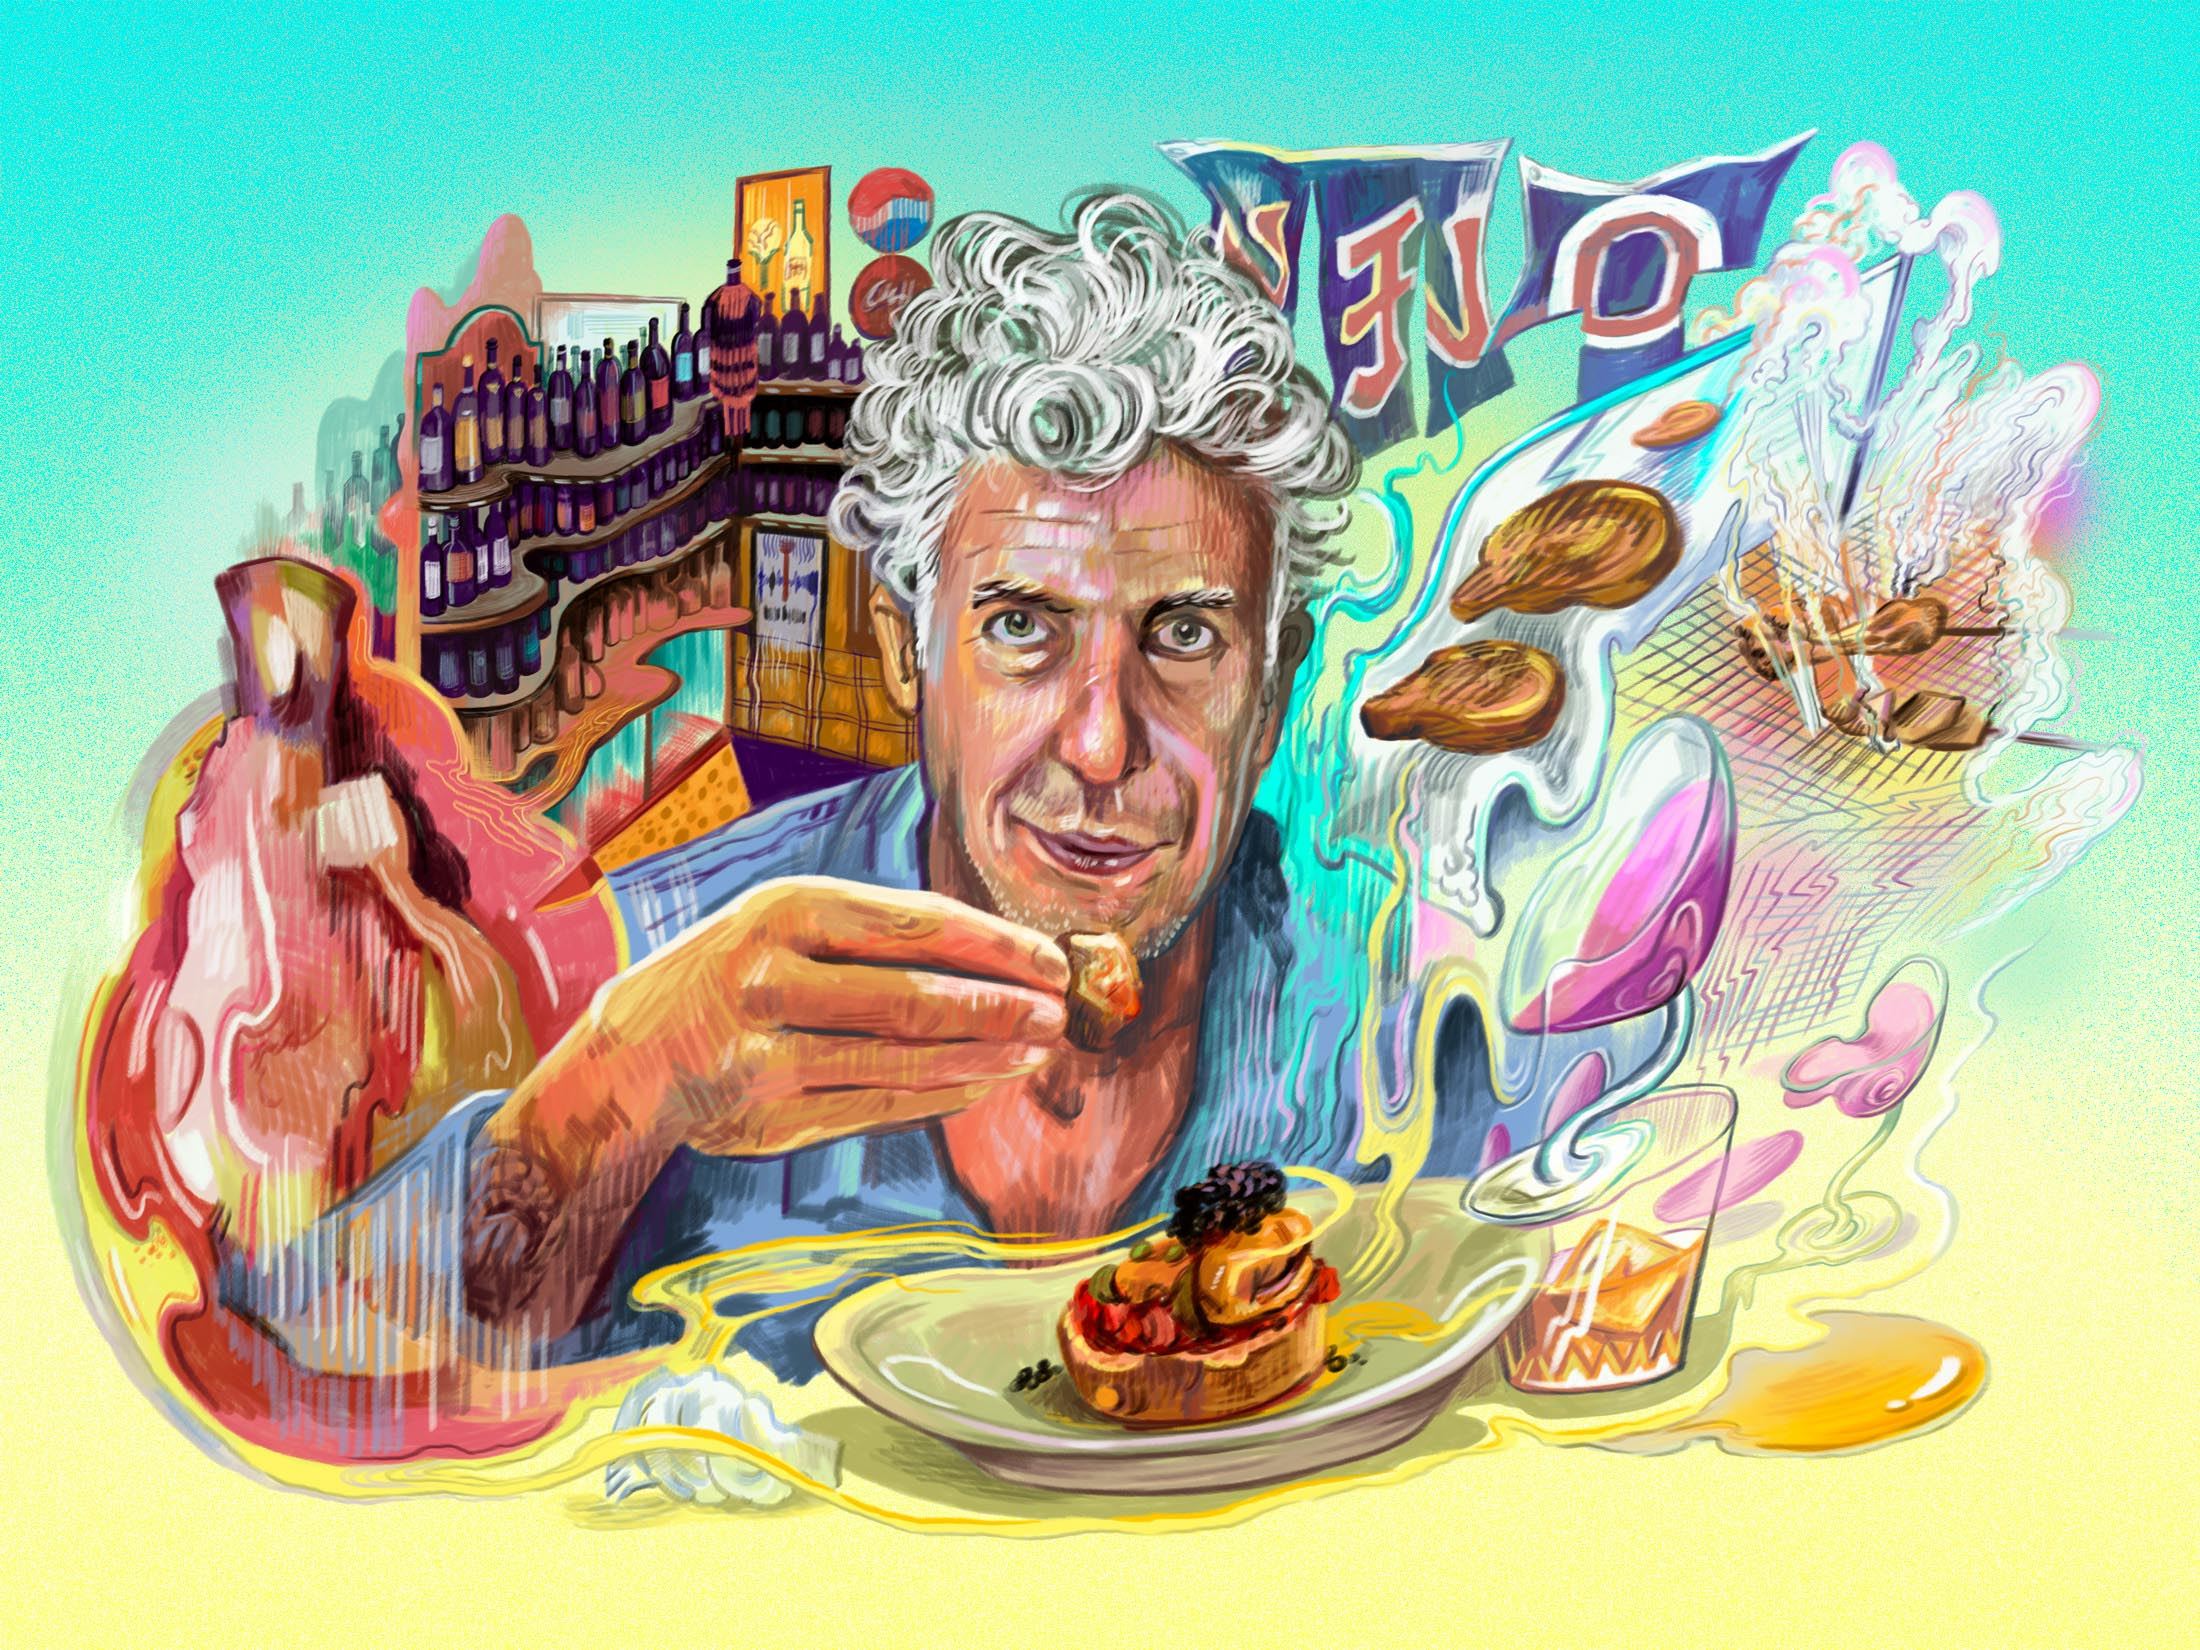 relates to Anthony Bourdain Gives His Last Advice on How to Travel the World